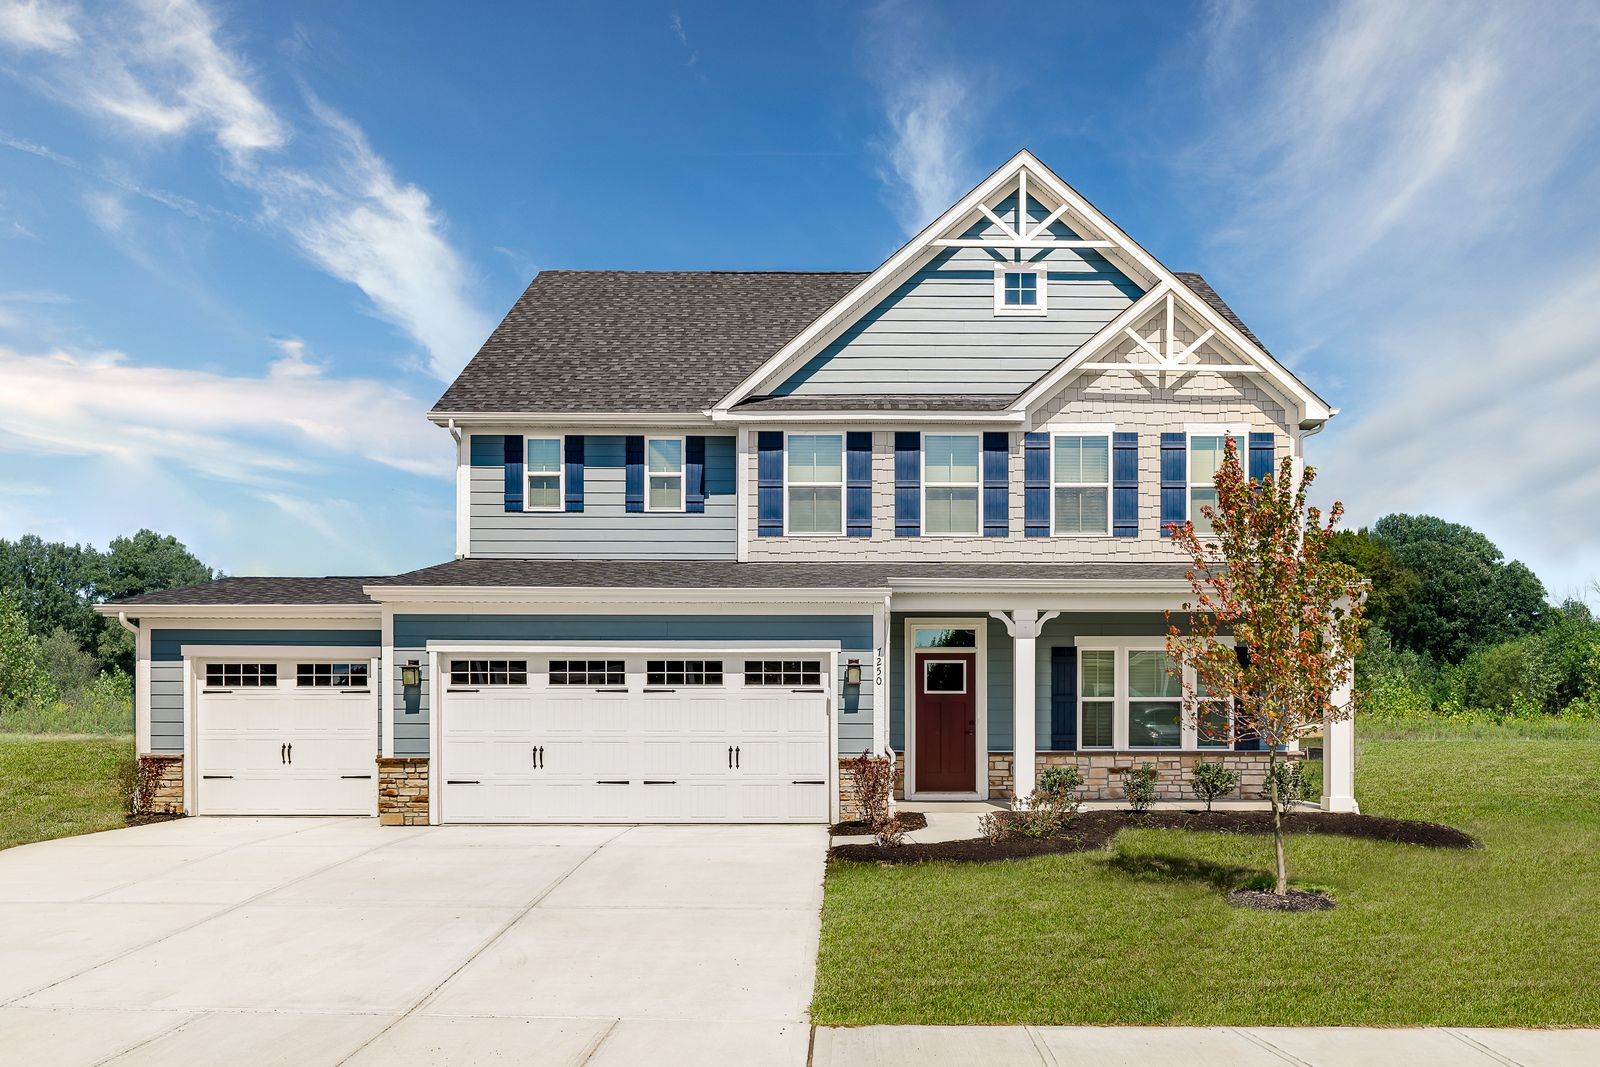 Emory Trace: New Homes in Westfield with Included 3-car Garages:Offering new 2-story and ranch homes in an small, intimate community. In an ideal Westfield location, just north of Grand Park.Click here to schedule your tour today.